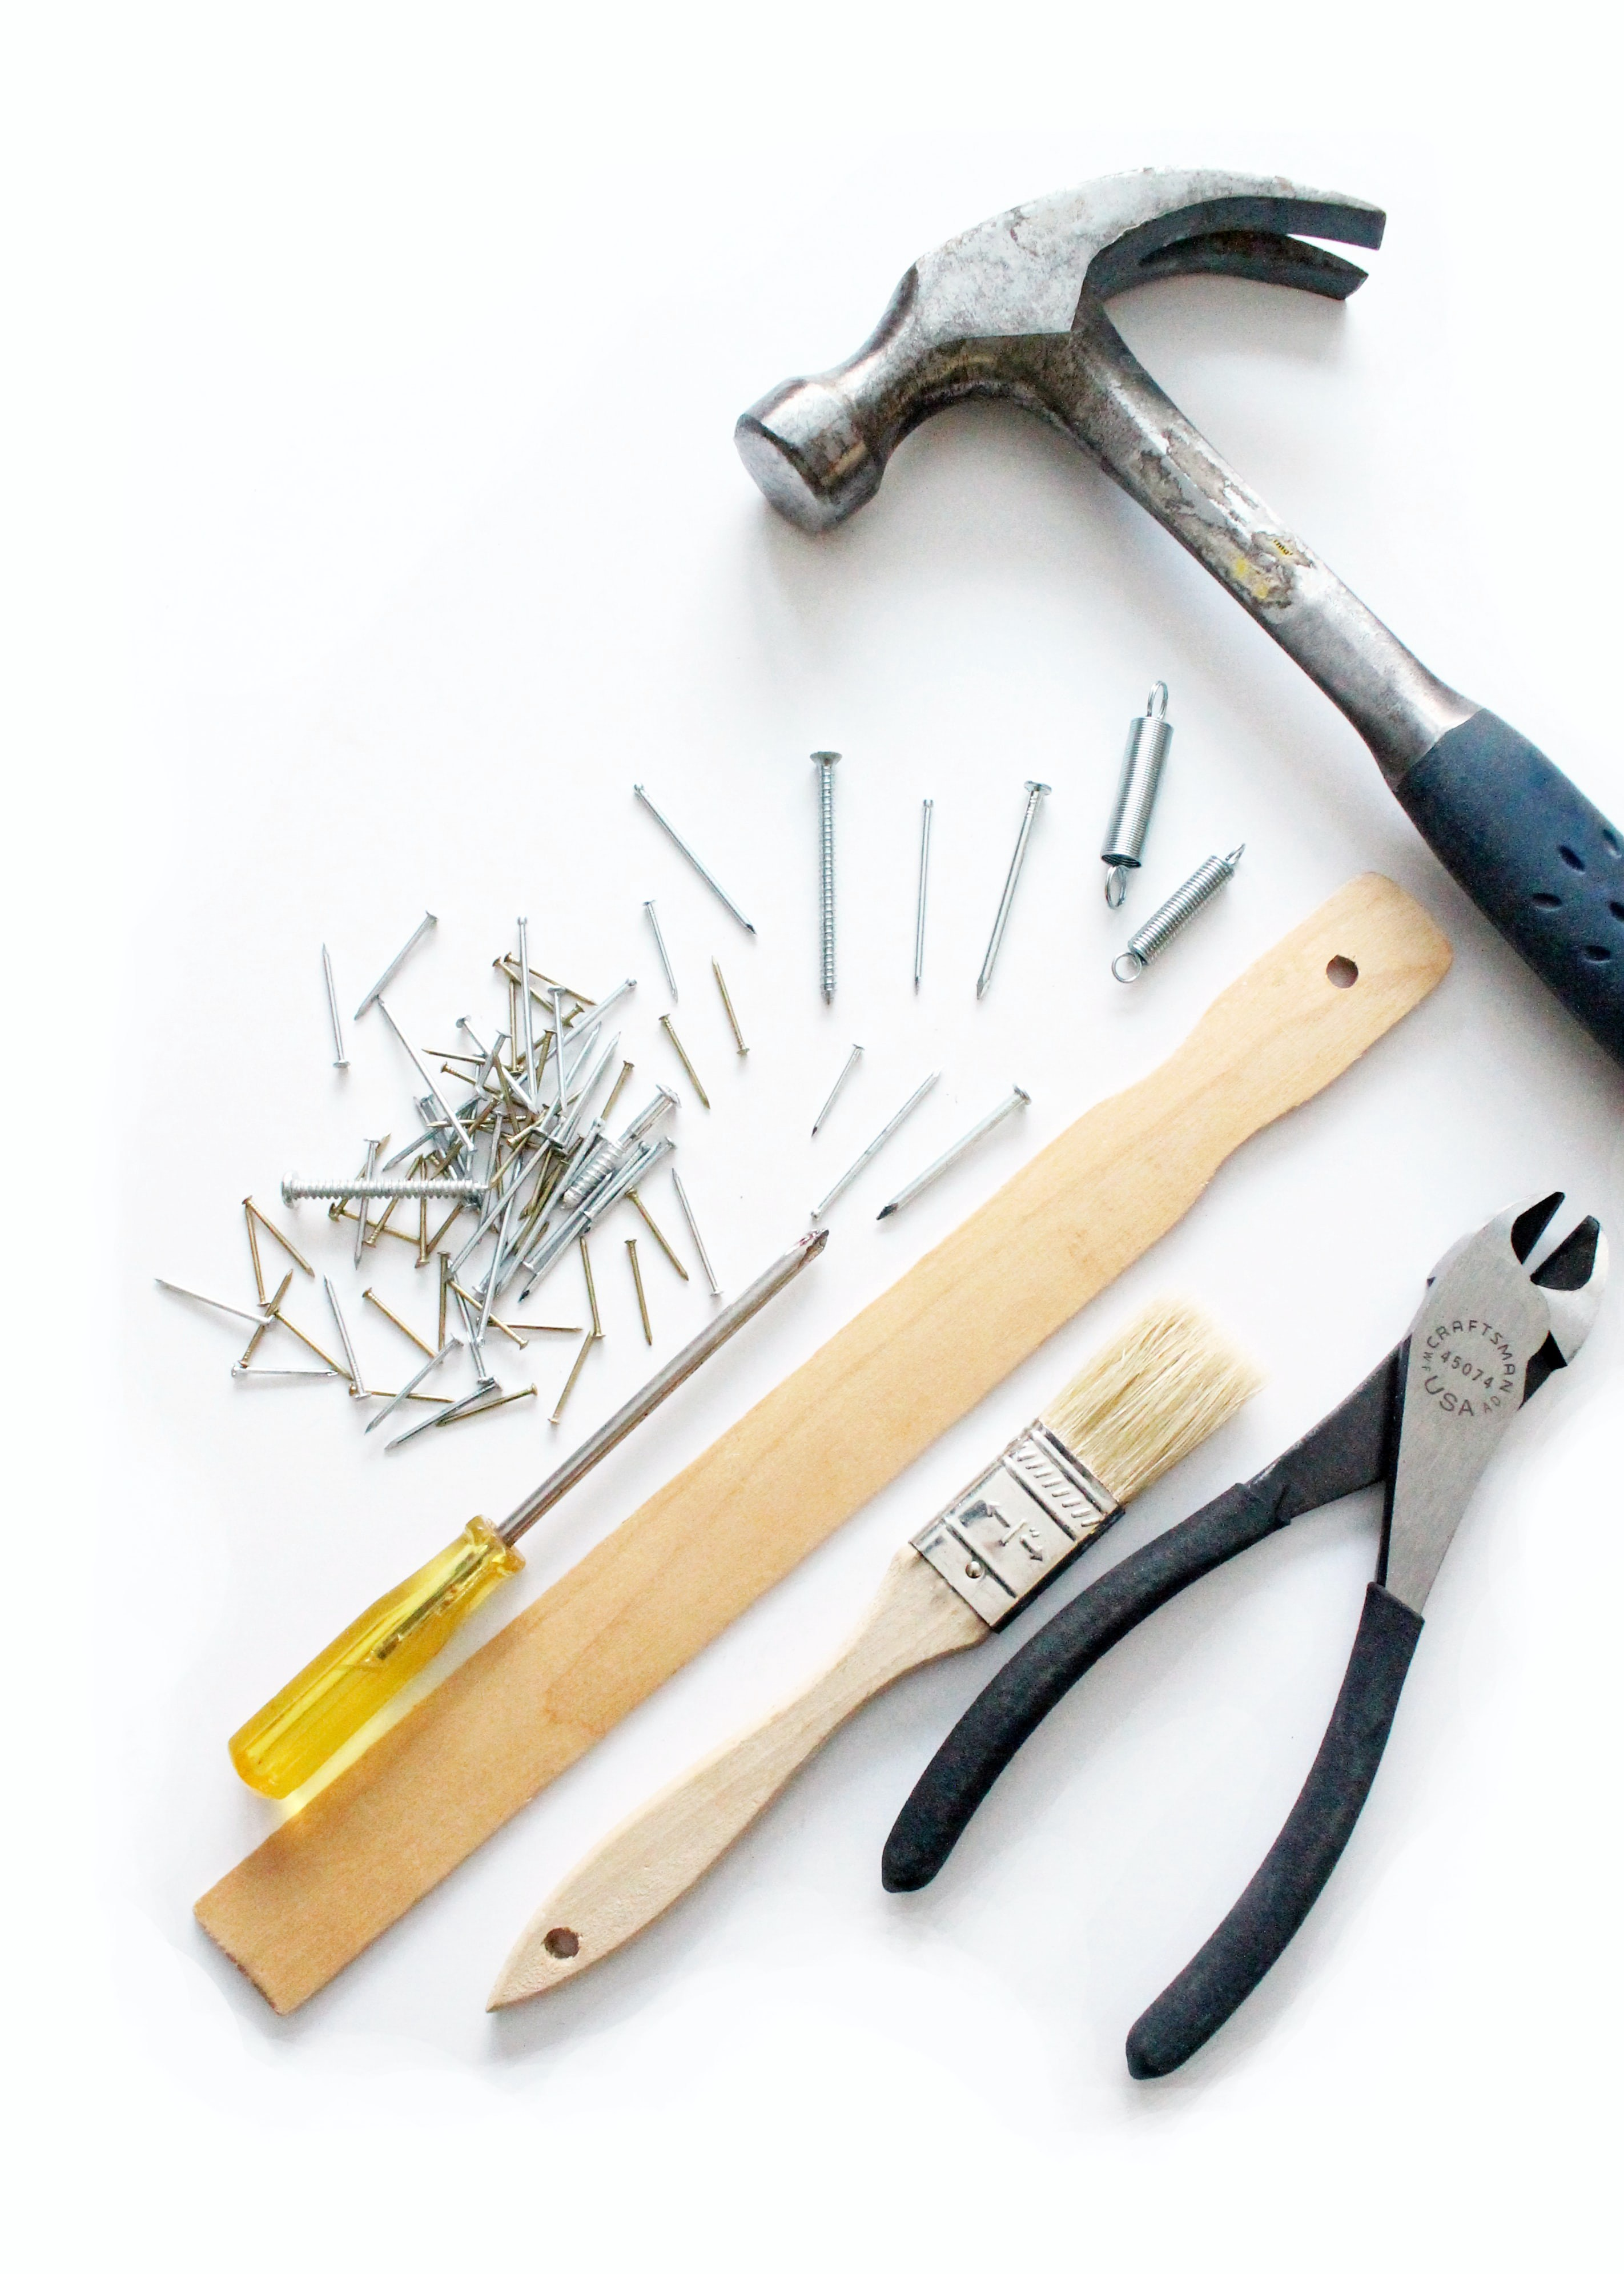 picture of nails, hammer, paint brush